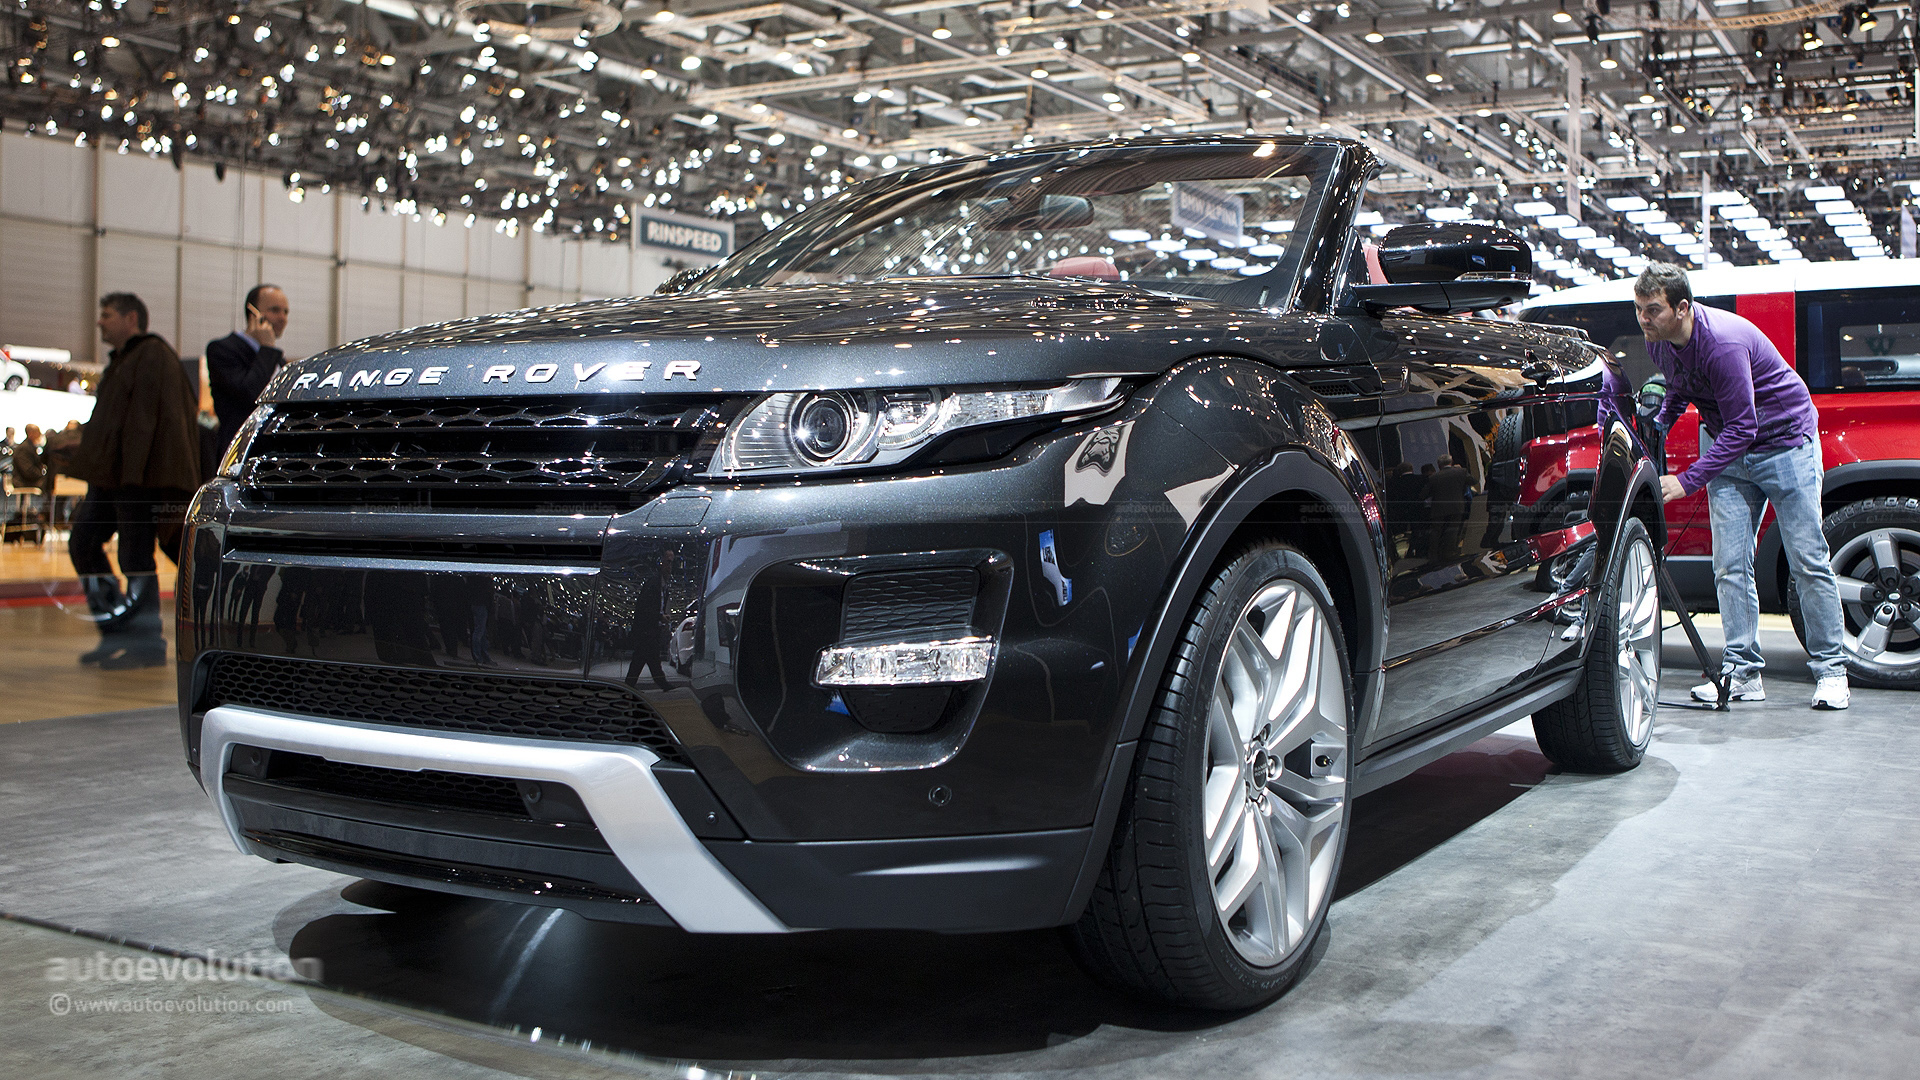 range rover evoque cabrio could be ready in 2015 autoevolution. Black Bedroom Furniture Sets. Home Design Ideas